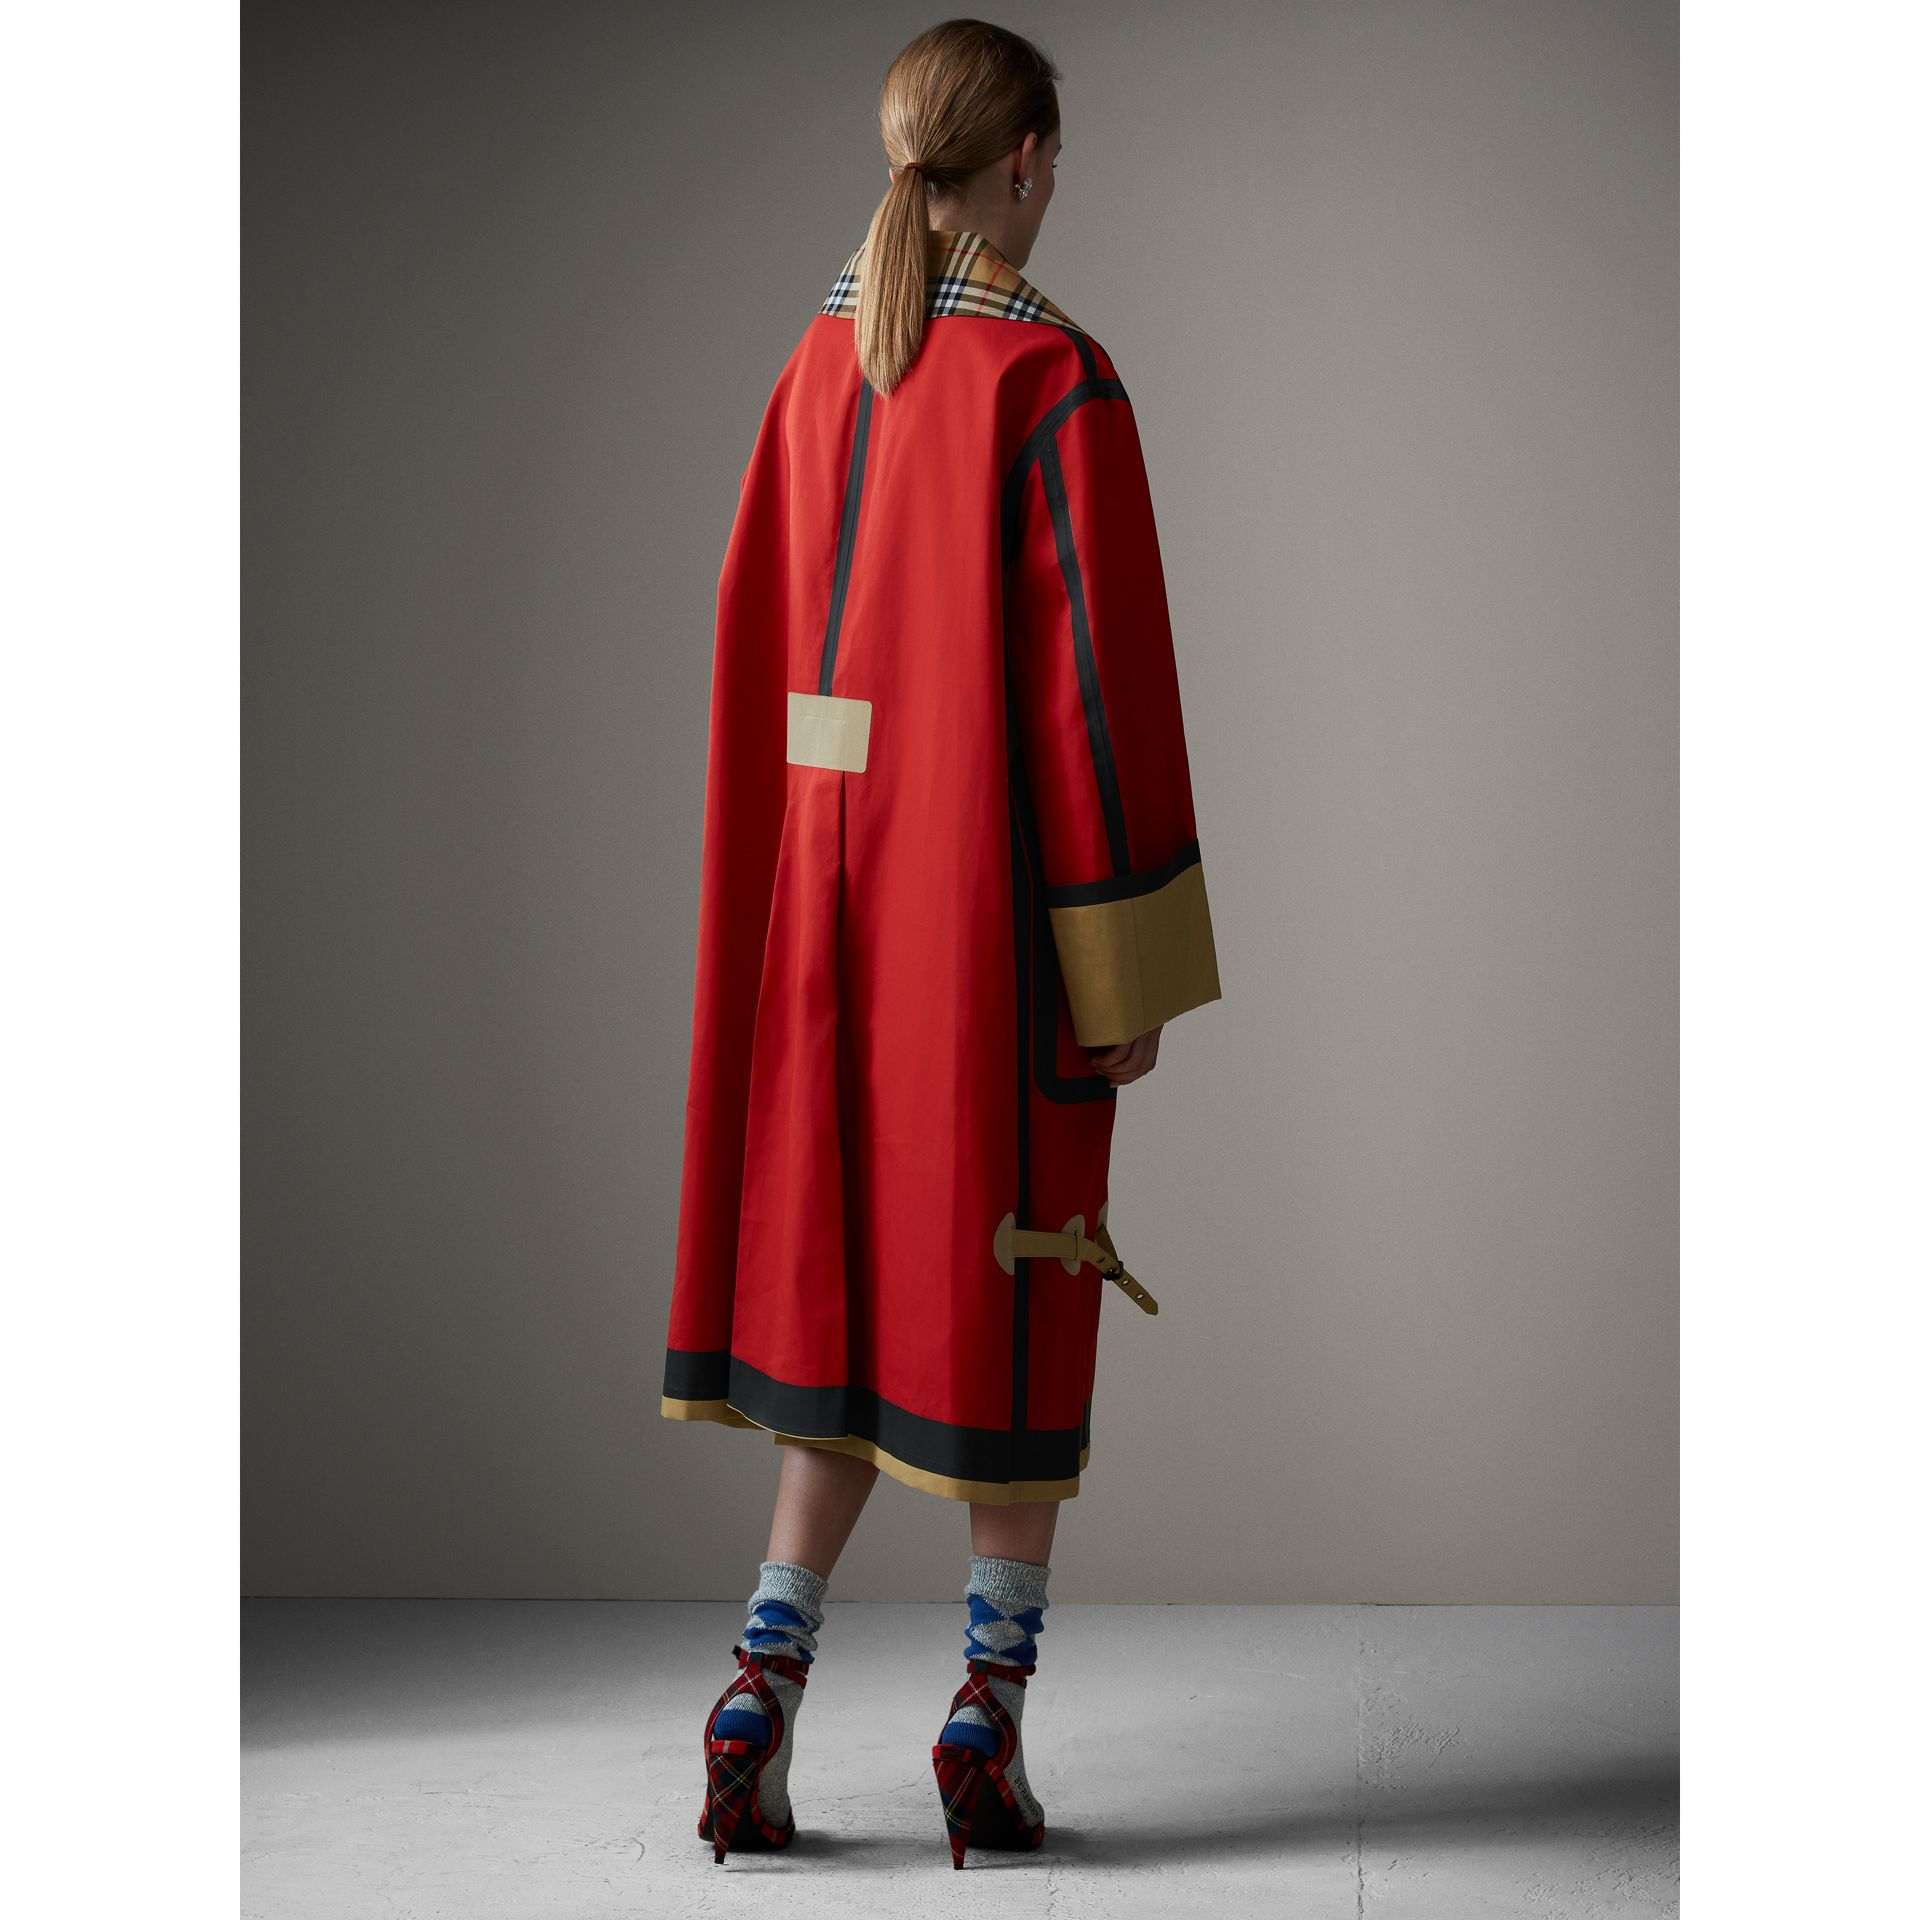 Bonded Cotton Oversized Seam-sealed Car Coat in Red/beige - Women | Burberry United Kingdom - gallery image 2